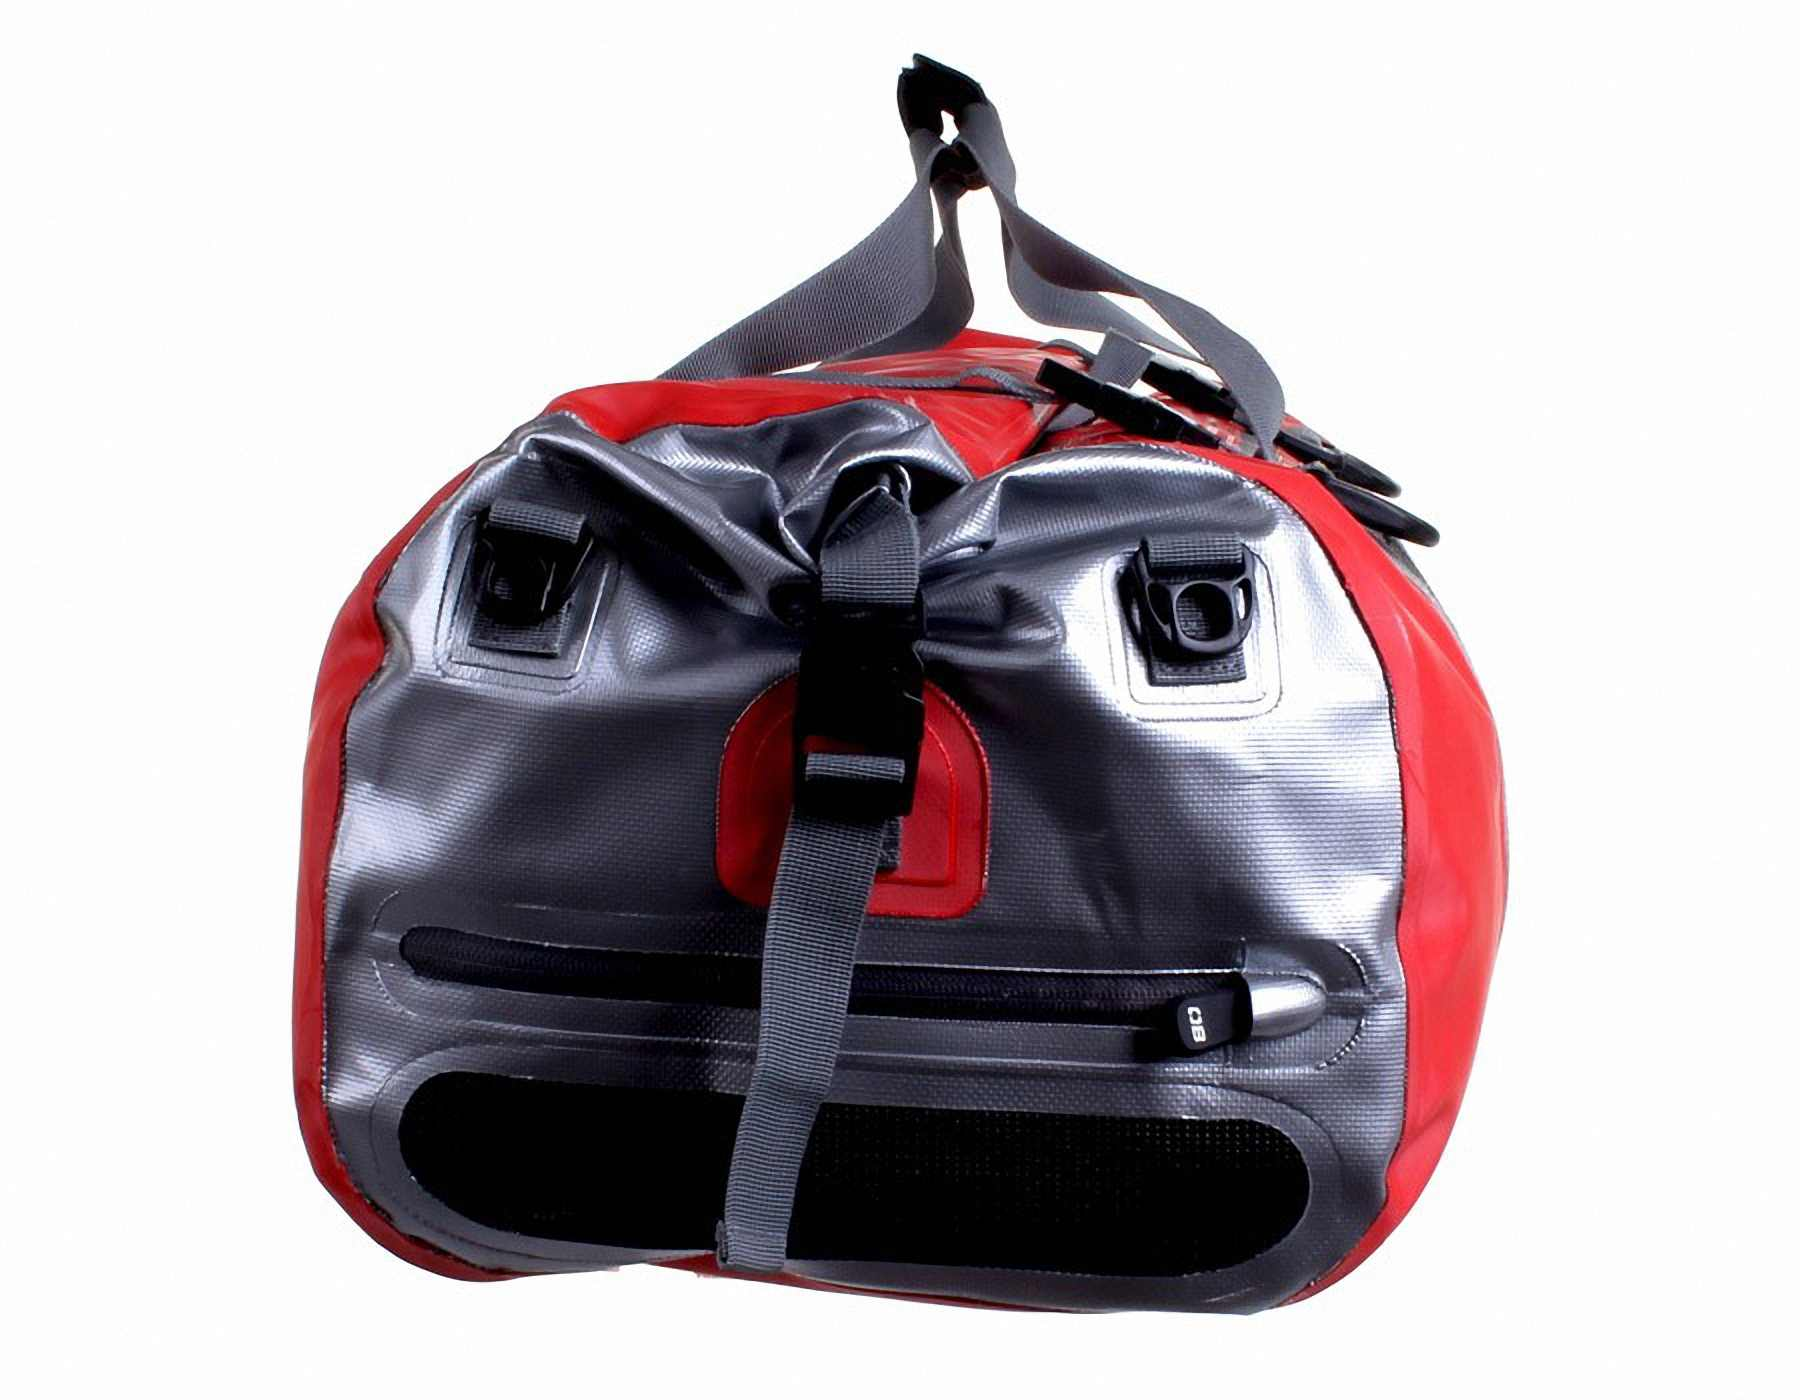 Водонепроницаемая сумка OverBoard OB1154R - Pro-Sports Waterproof Duffel Bag - 60 литров.  Фото 3